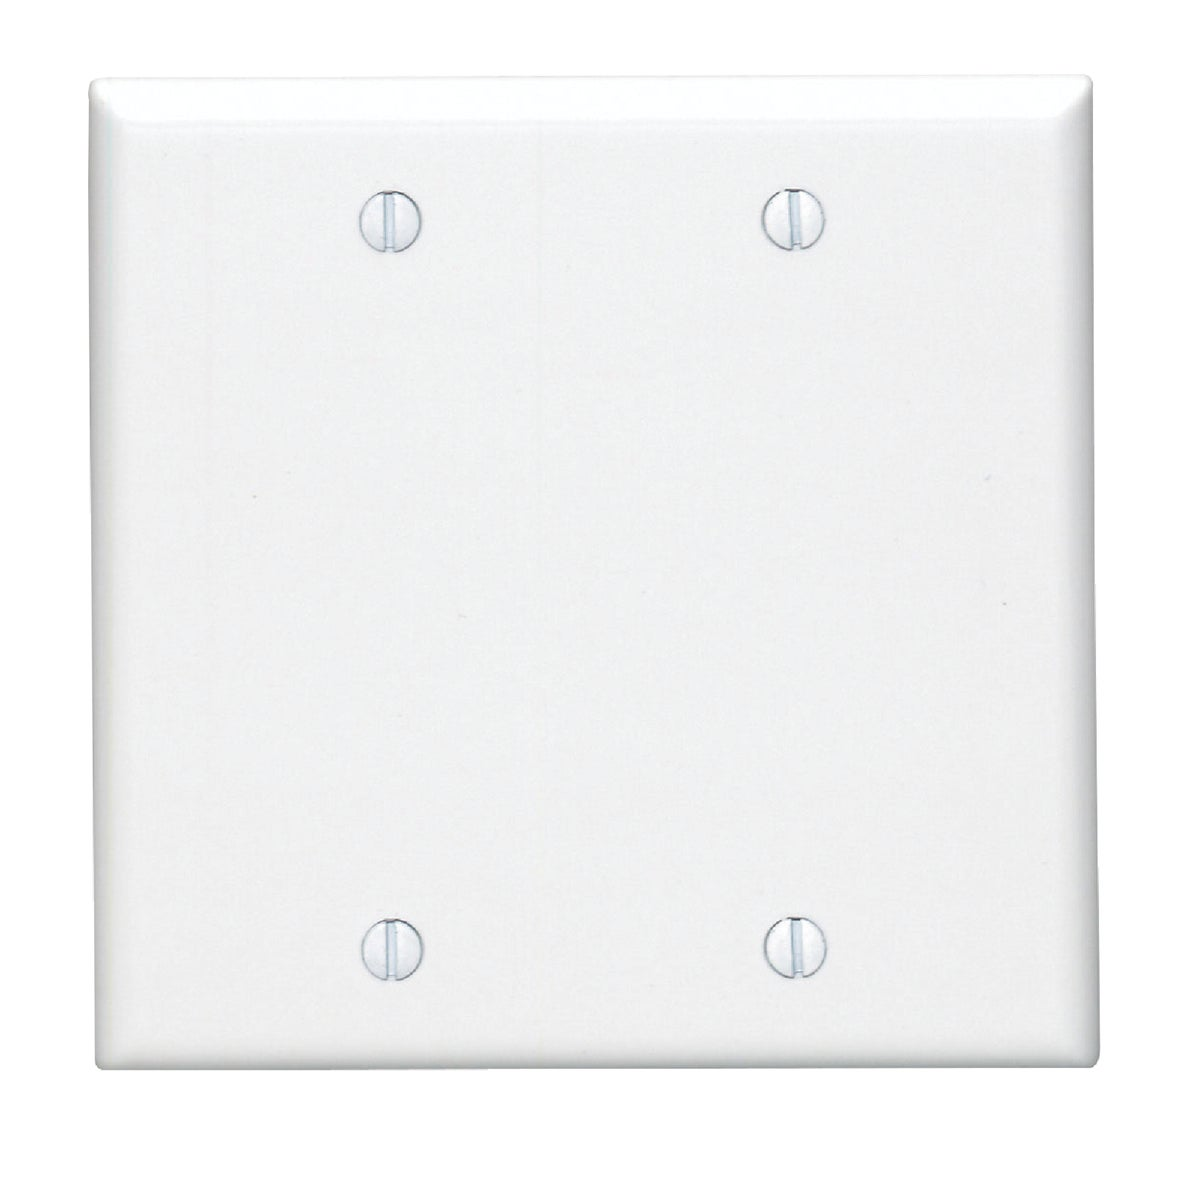 WHT BLANK WALL PLATE - 88025 by Leviton Mfg Co